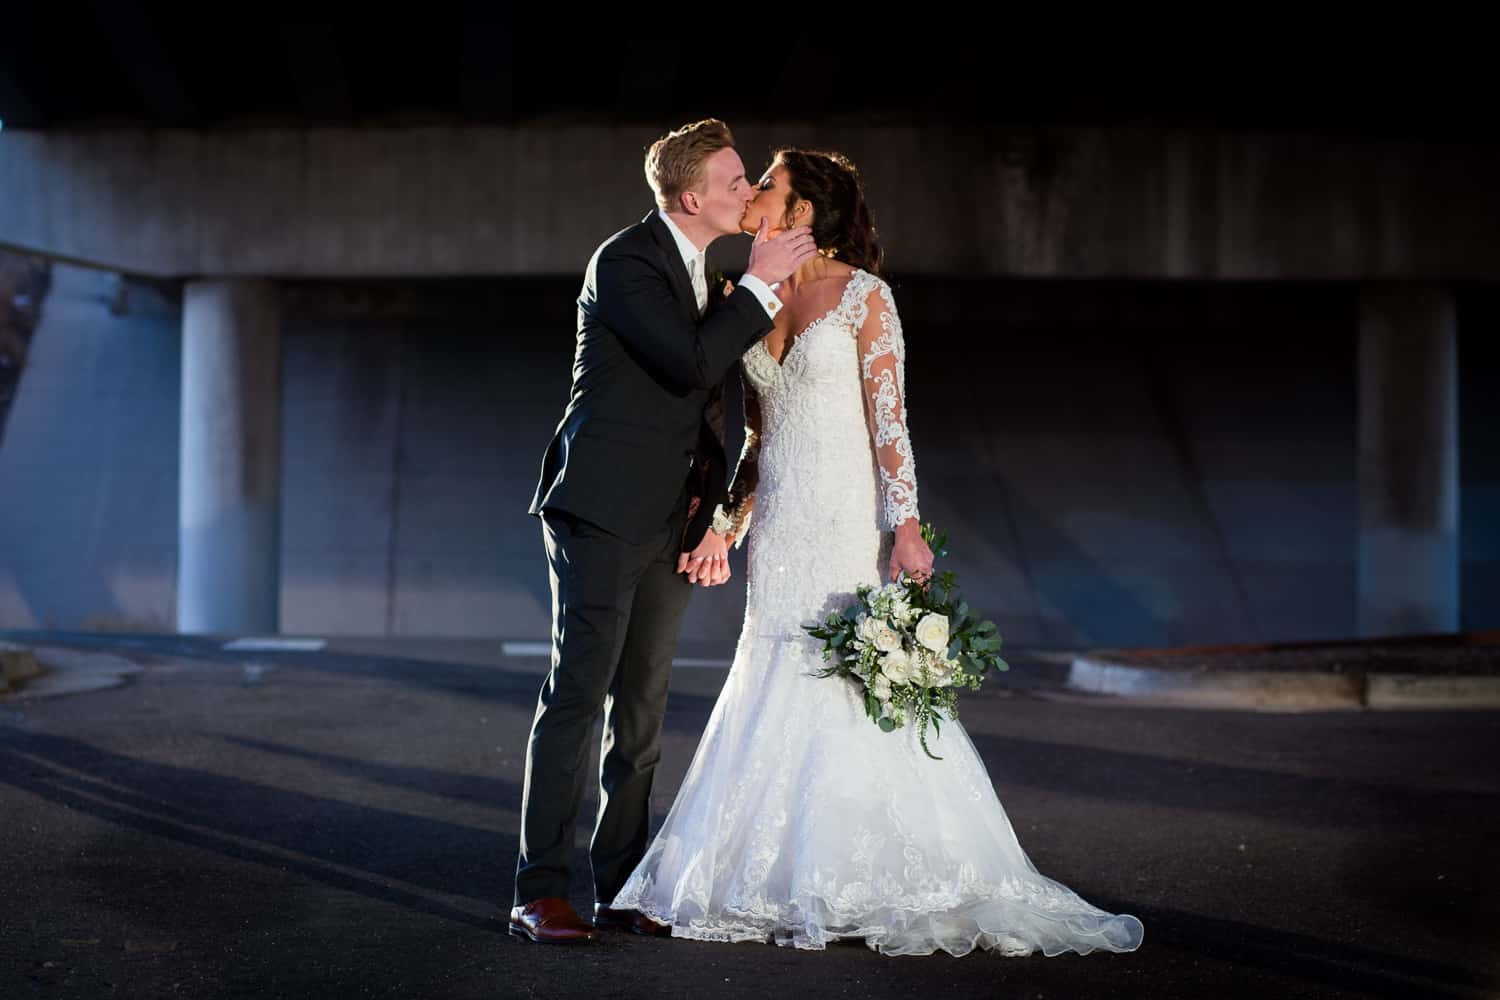 Maddie & Chace – Winter Wedding, Mile High Station